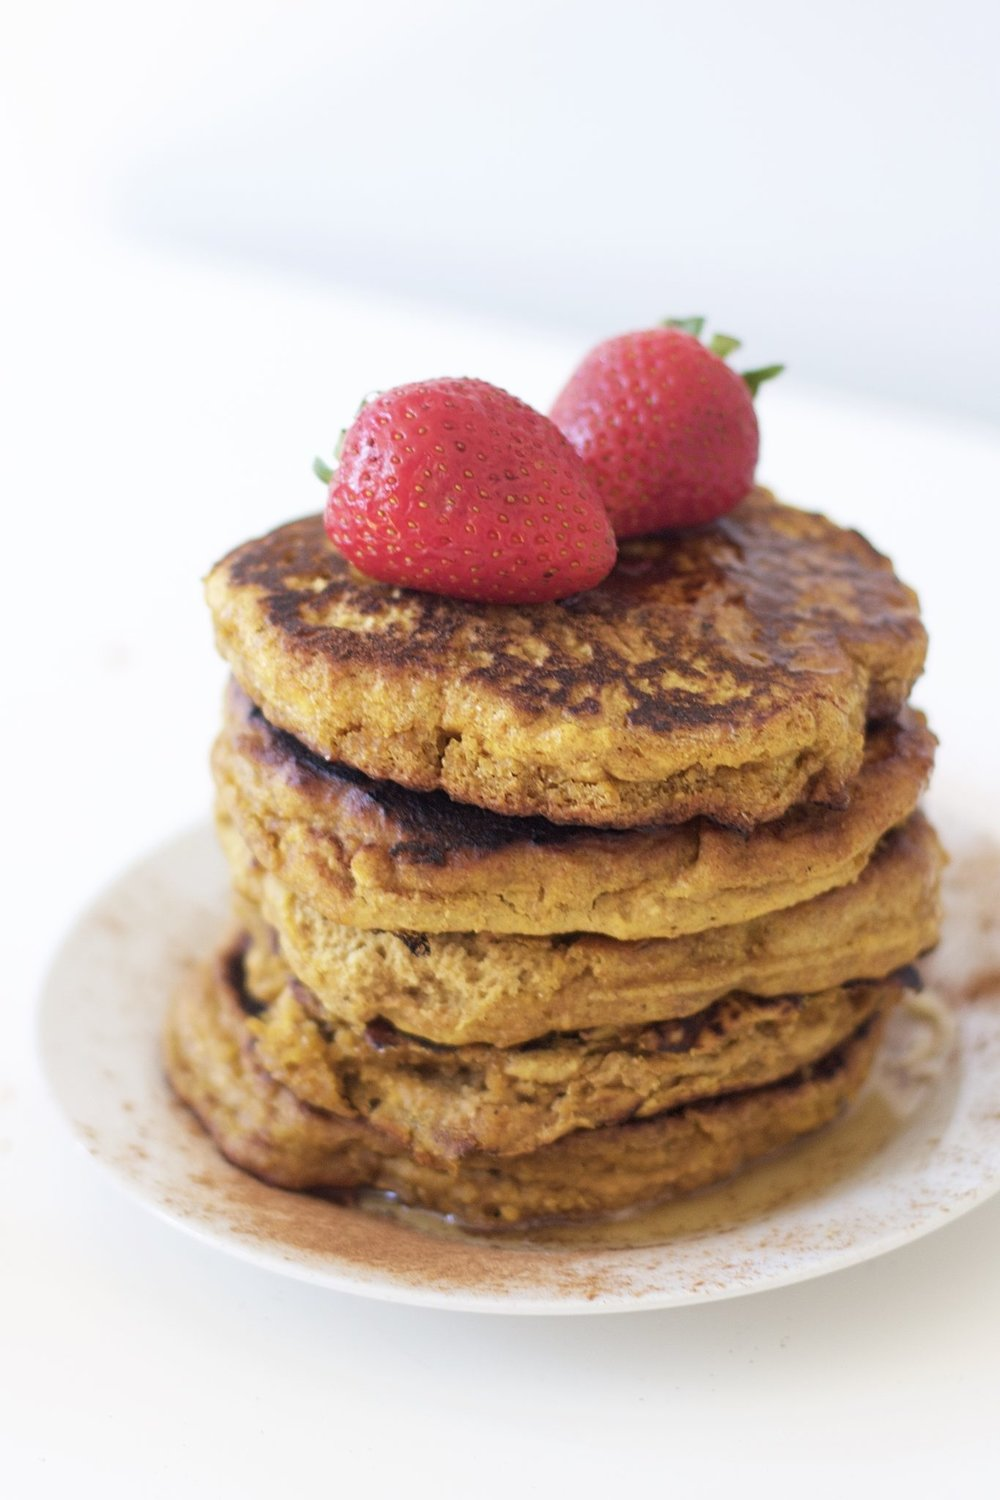 HEALTHY PUMPKIN PANCAKES - Ingredients3/4 cup Pumpkin puree, canned1 cup Almond milk, unsweetened2 Eggs3 tbsp Maple syrup, pure2 1/2 cups Almond flour1 tsp Baking powder1 tsp Baking soda1/2 tsp Cinnamon, organic1/4 tsp Nutmeg, organic1/2 tsp Salt1 1/2 tsp Vanilla extract1 1/2 tsp Apple cider vinegar2 tbsp ButterSee it here!